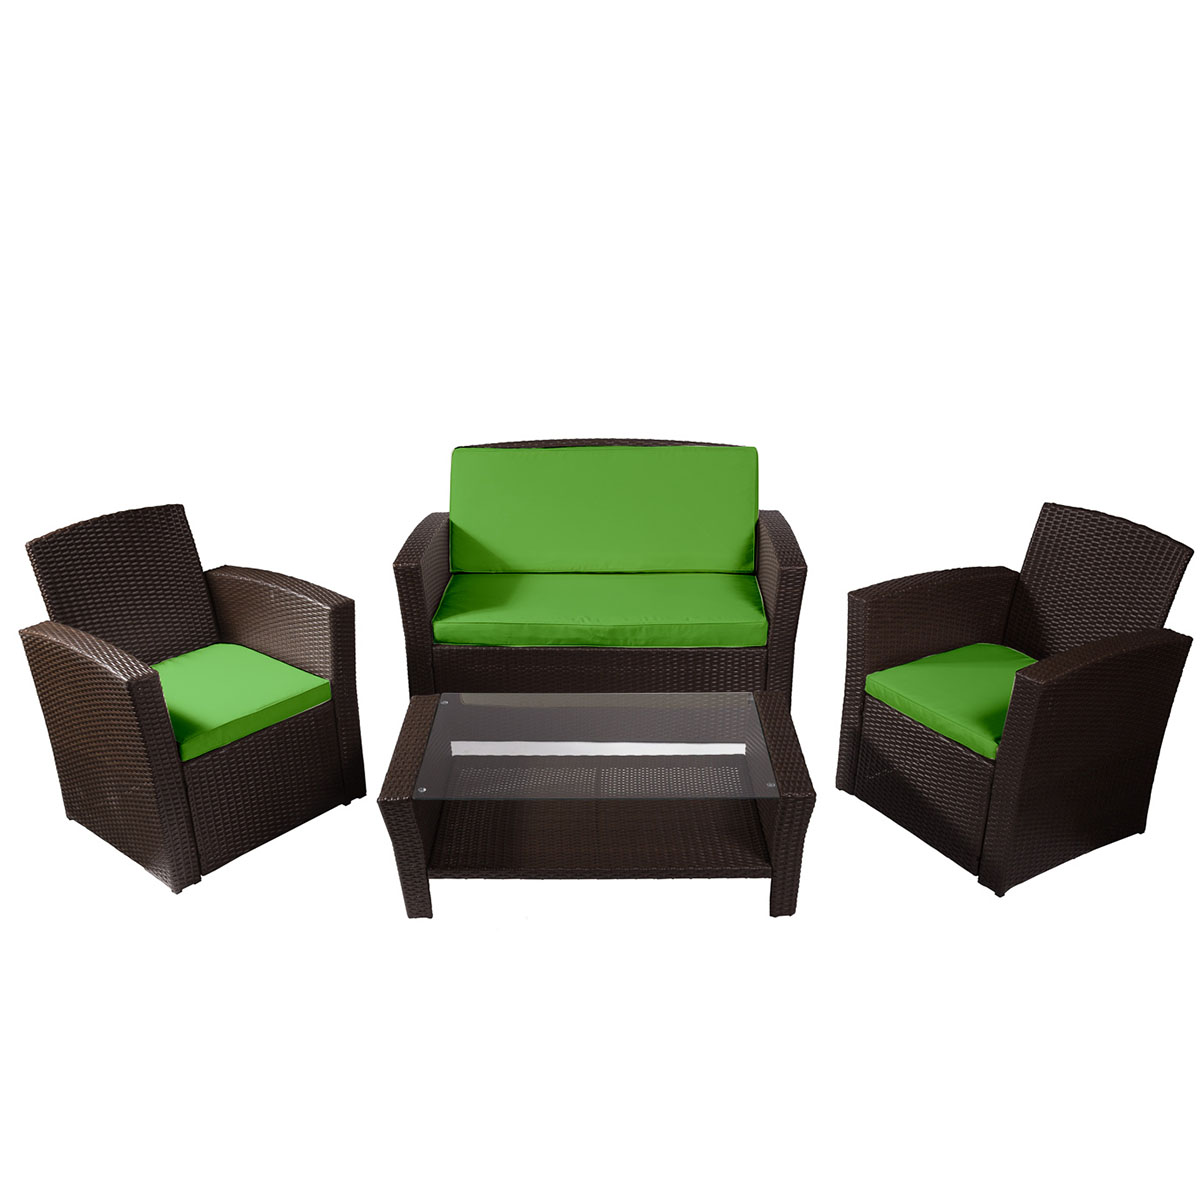 rotin salon largo couleur eb ne et coussin vert salo. Black Bedroom Furniture Sets. Home Design Ideas